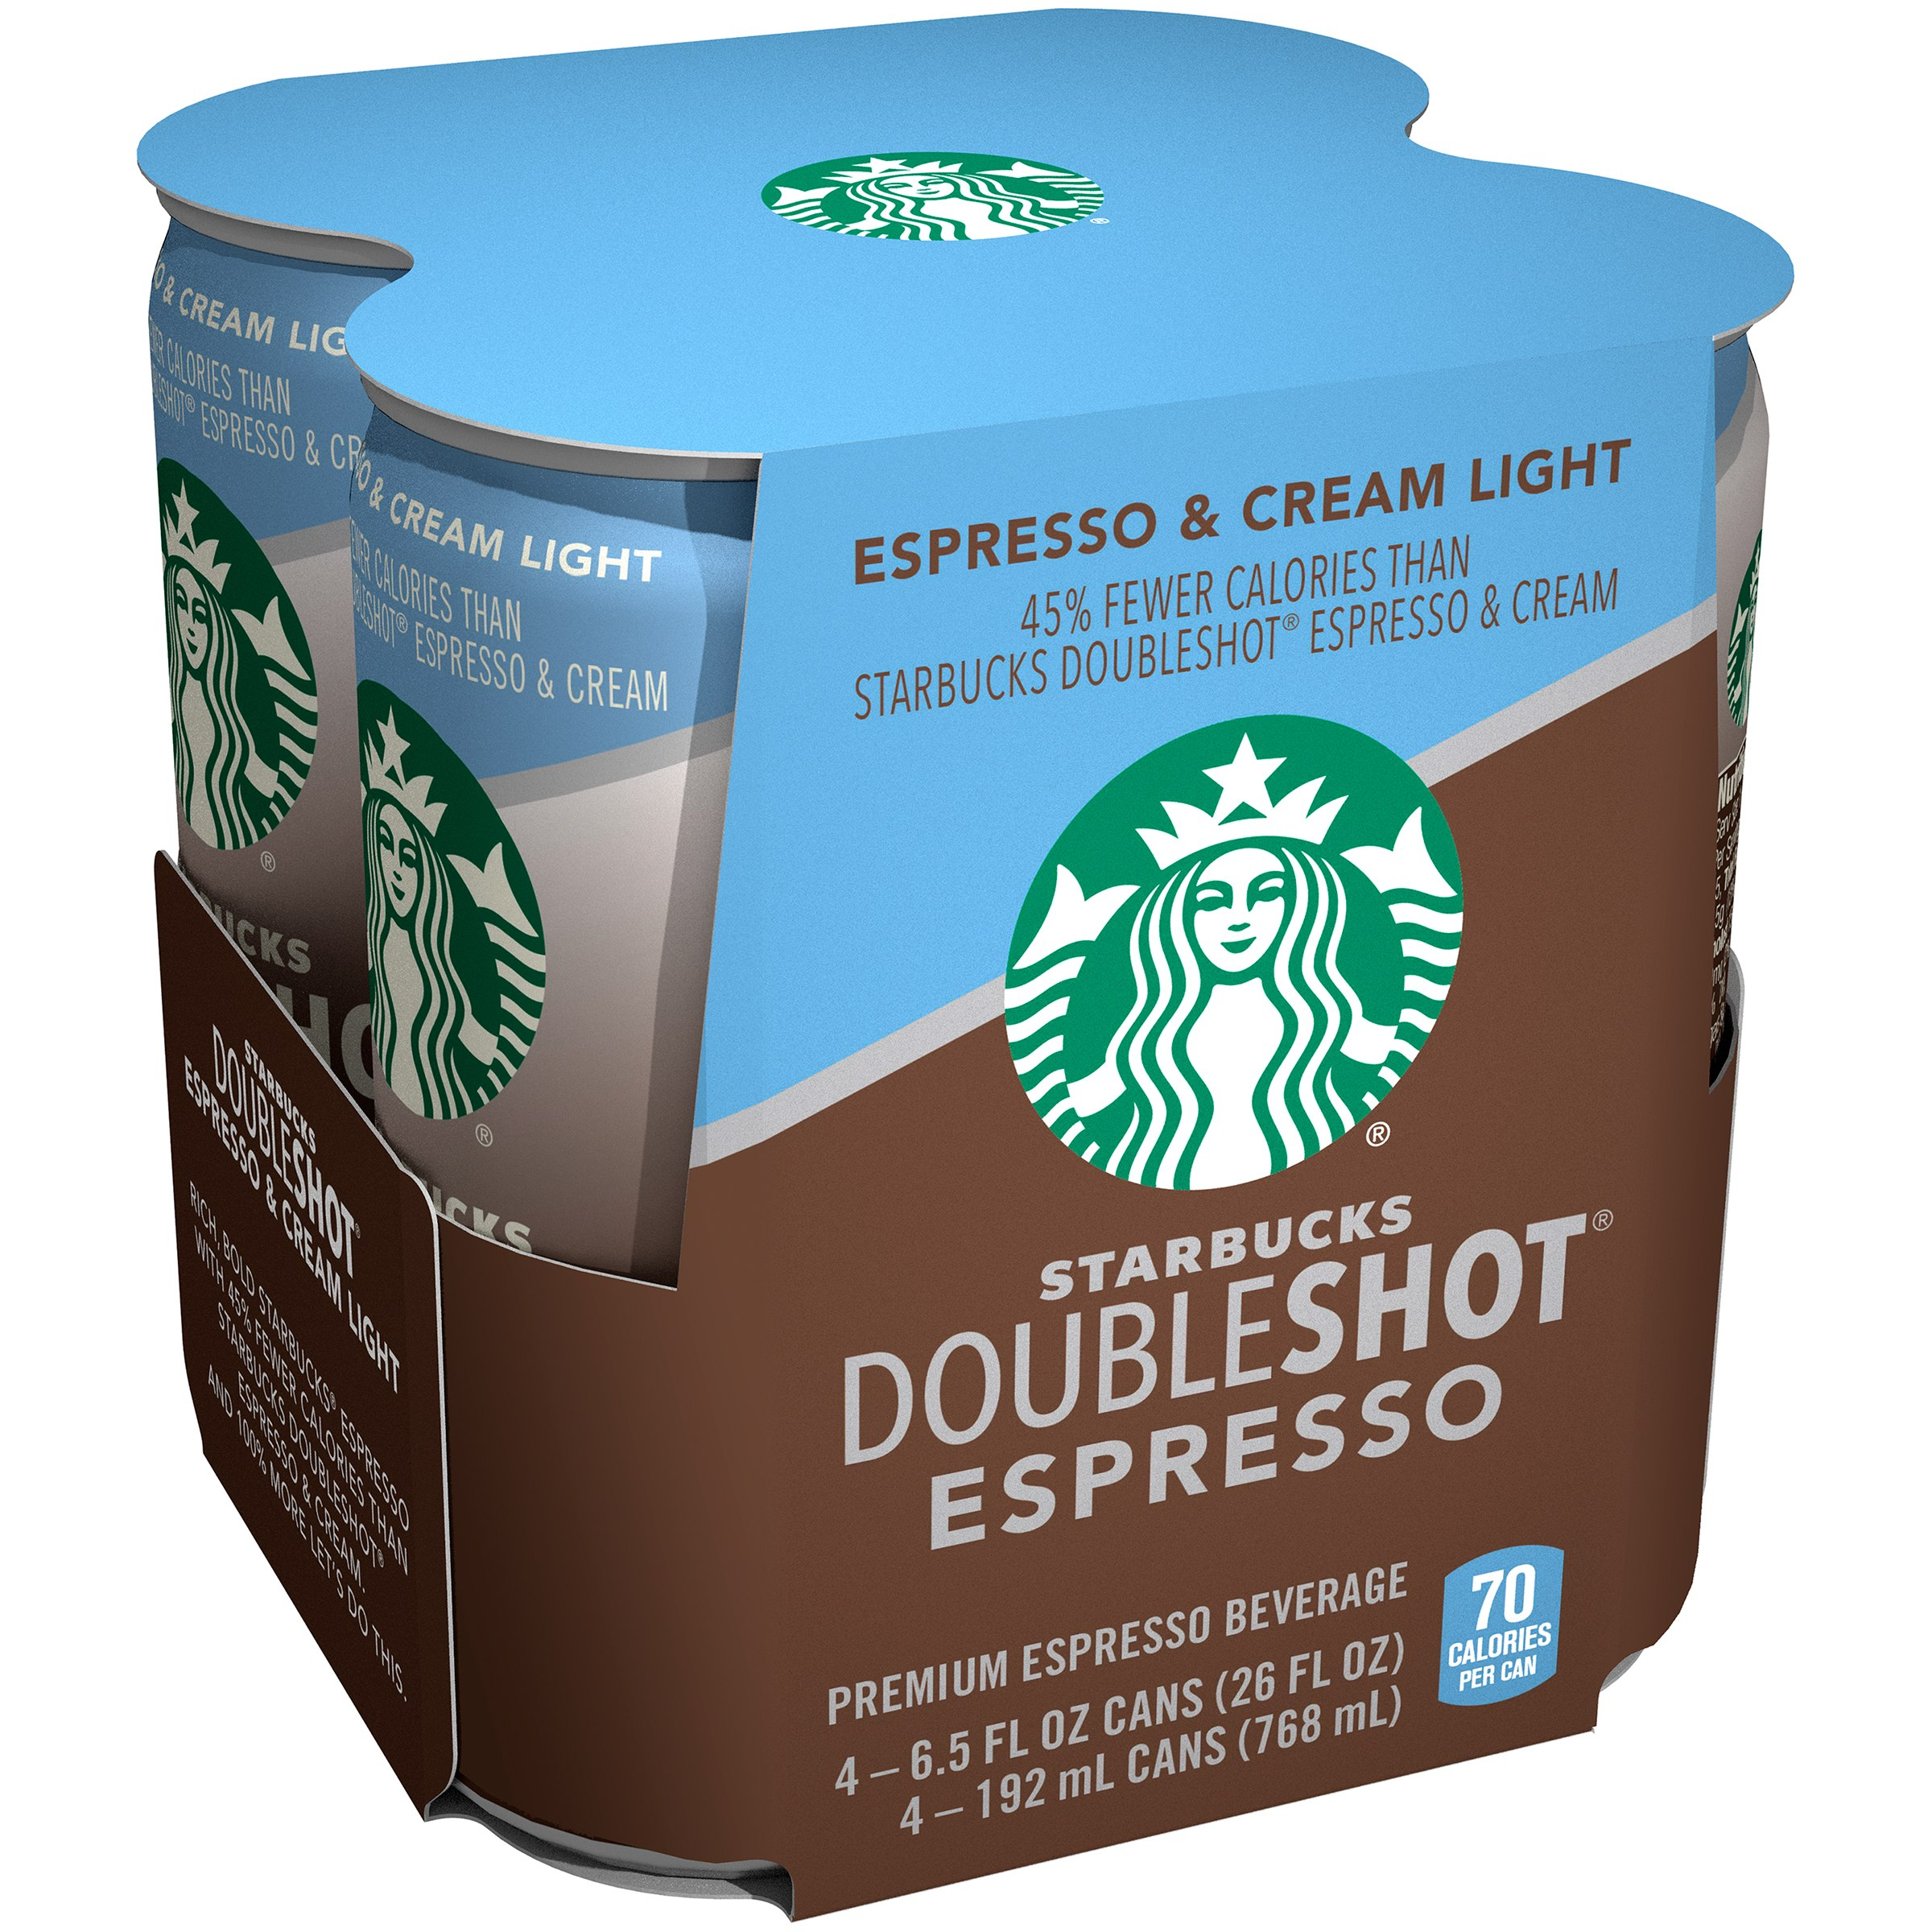 (24 Cans) Starbucks Doubleshot Espresso, Espresso & Cream Light, 6.5 oz Cans